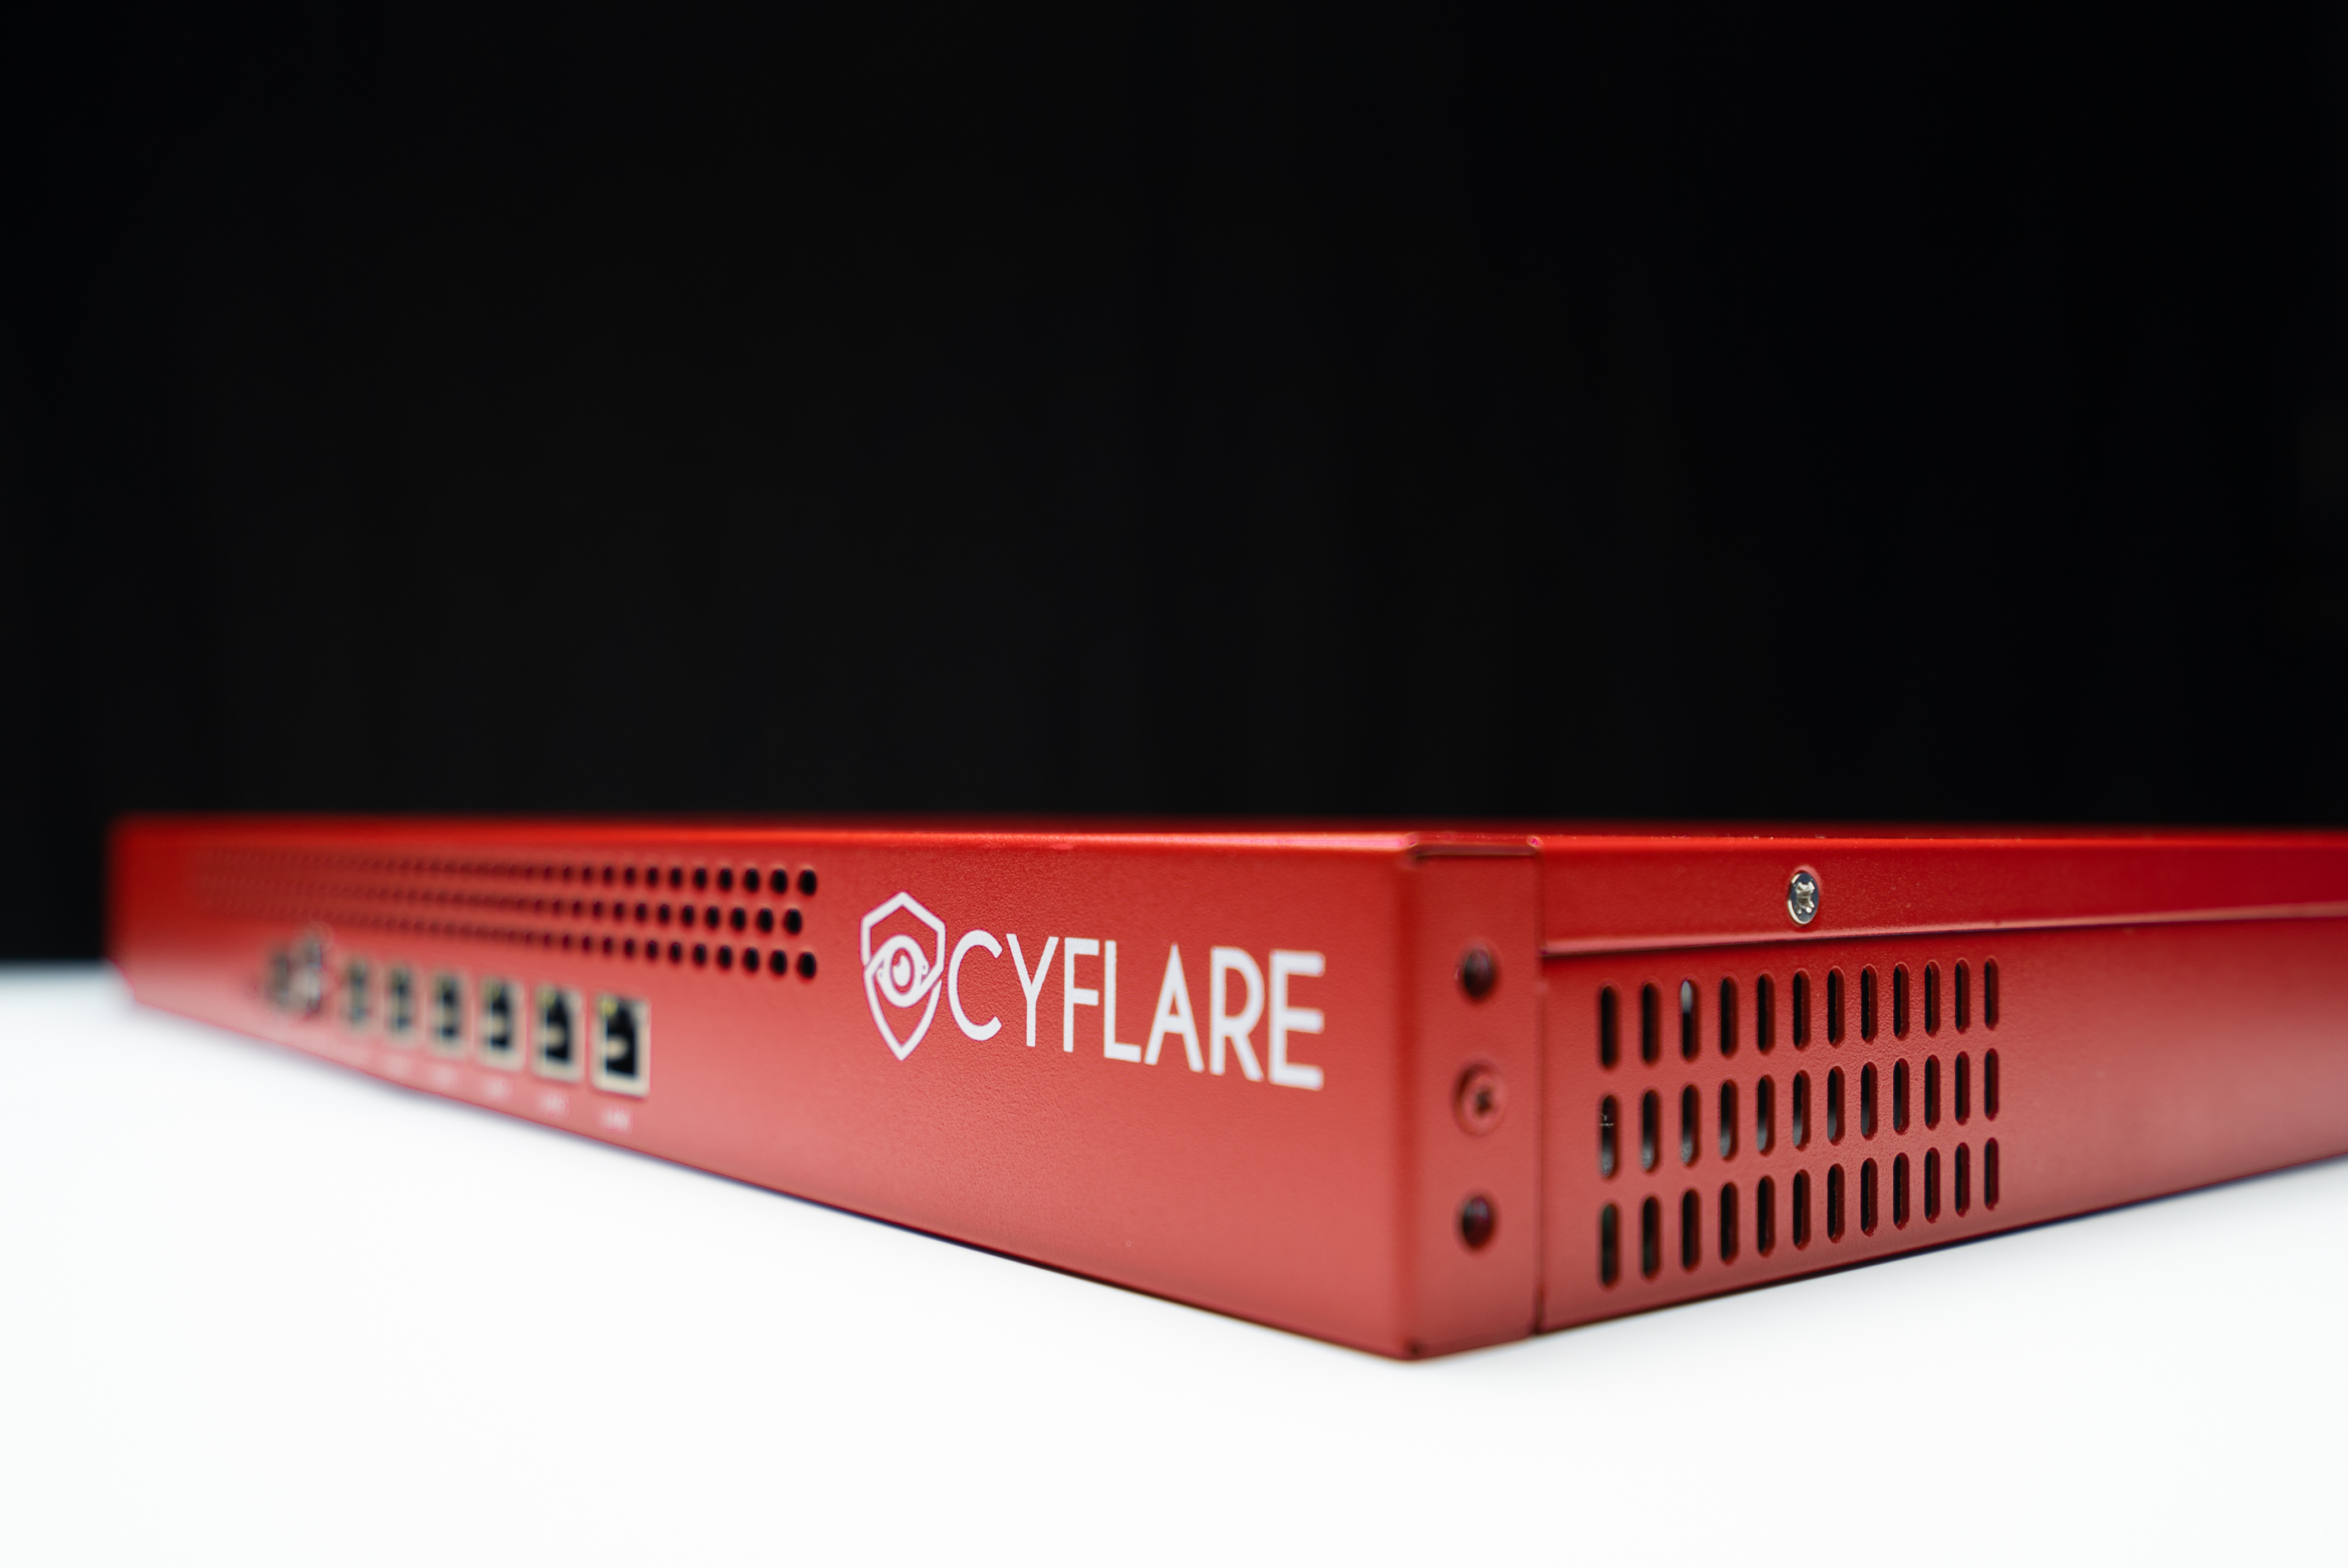 CyFlare Announces Managed Remote Access Service & Advanced DLP Security Features